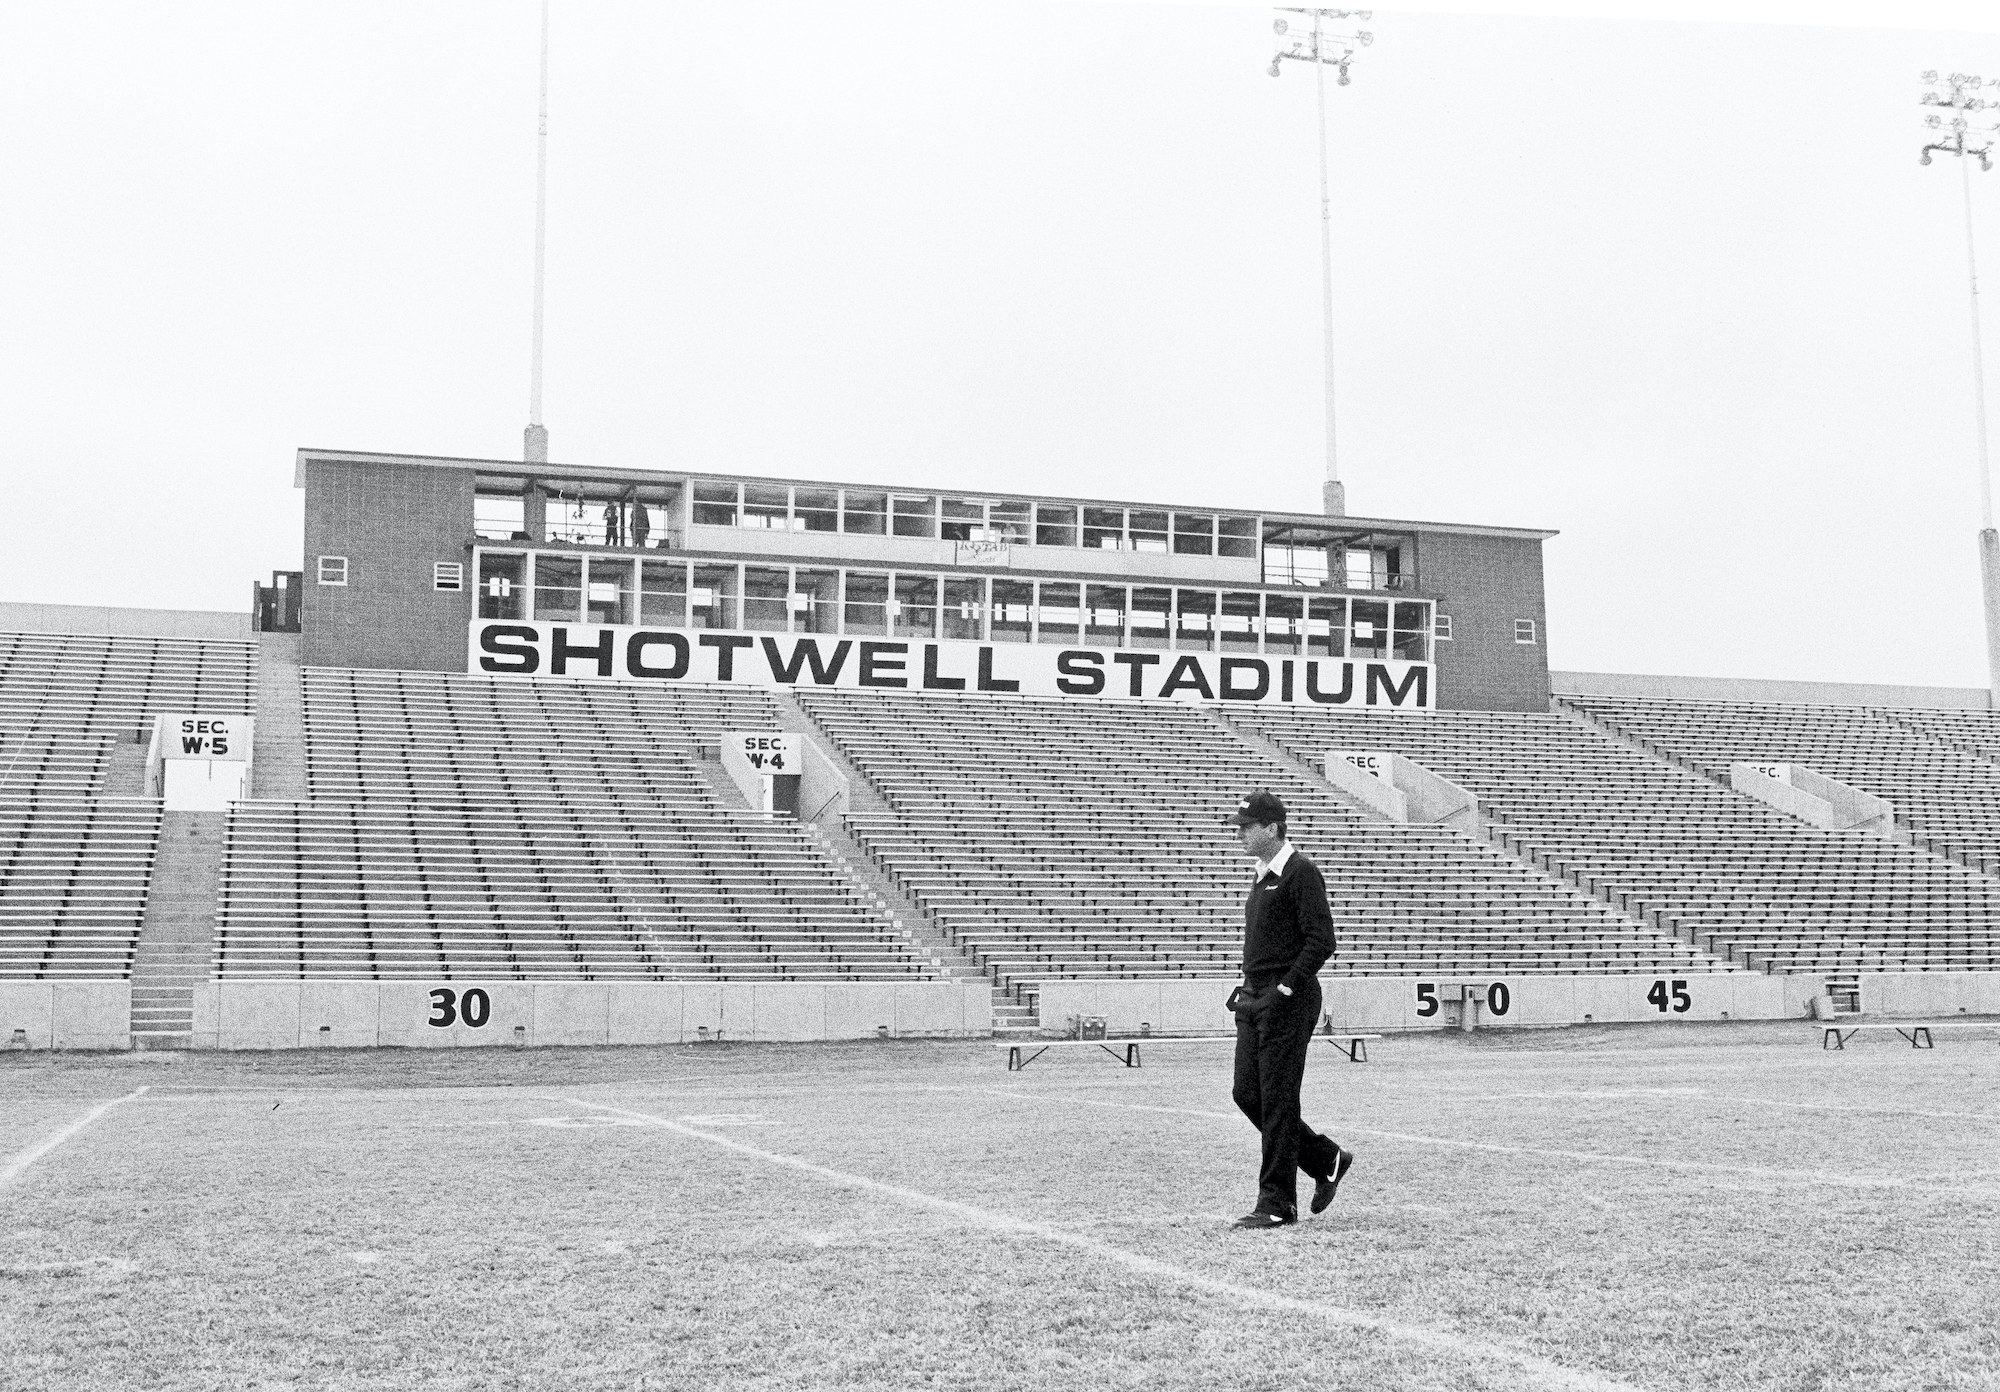 """Man wearing a cap walks on the field in an empty stadium with sign """"Shotwell Stadium"""" in background"""